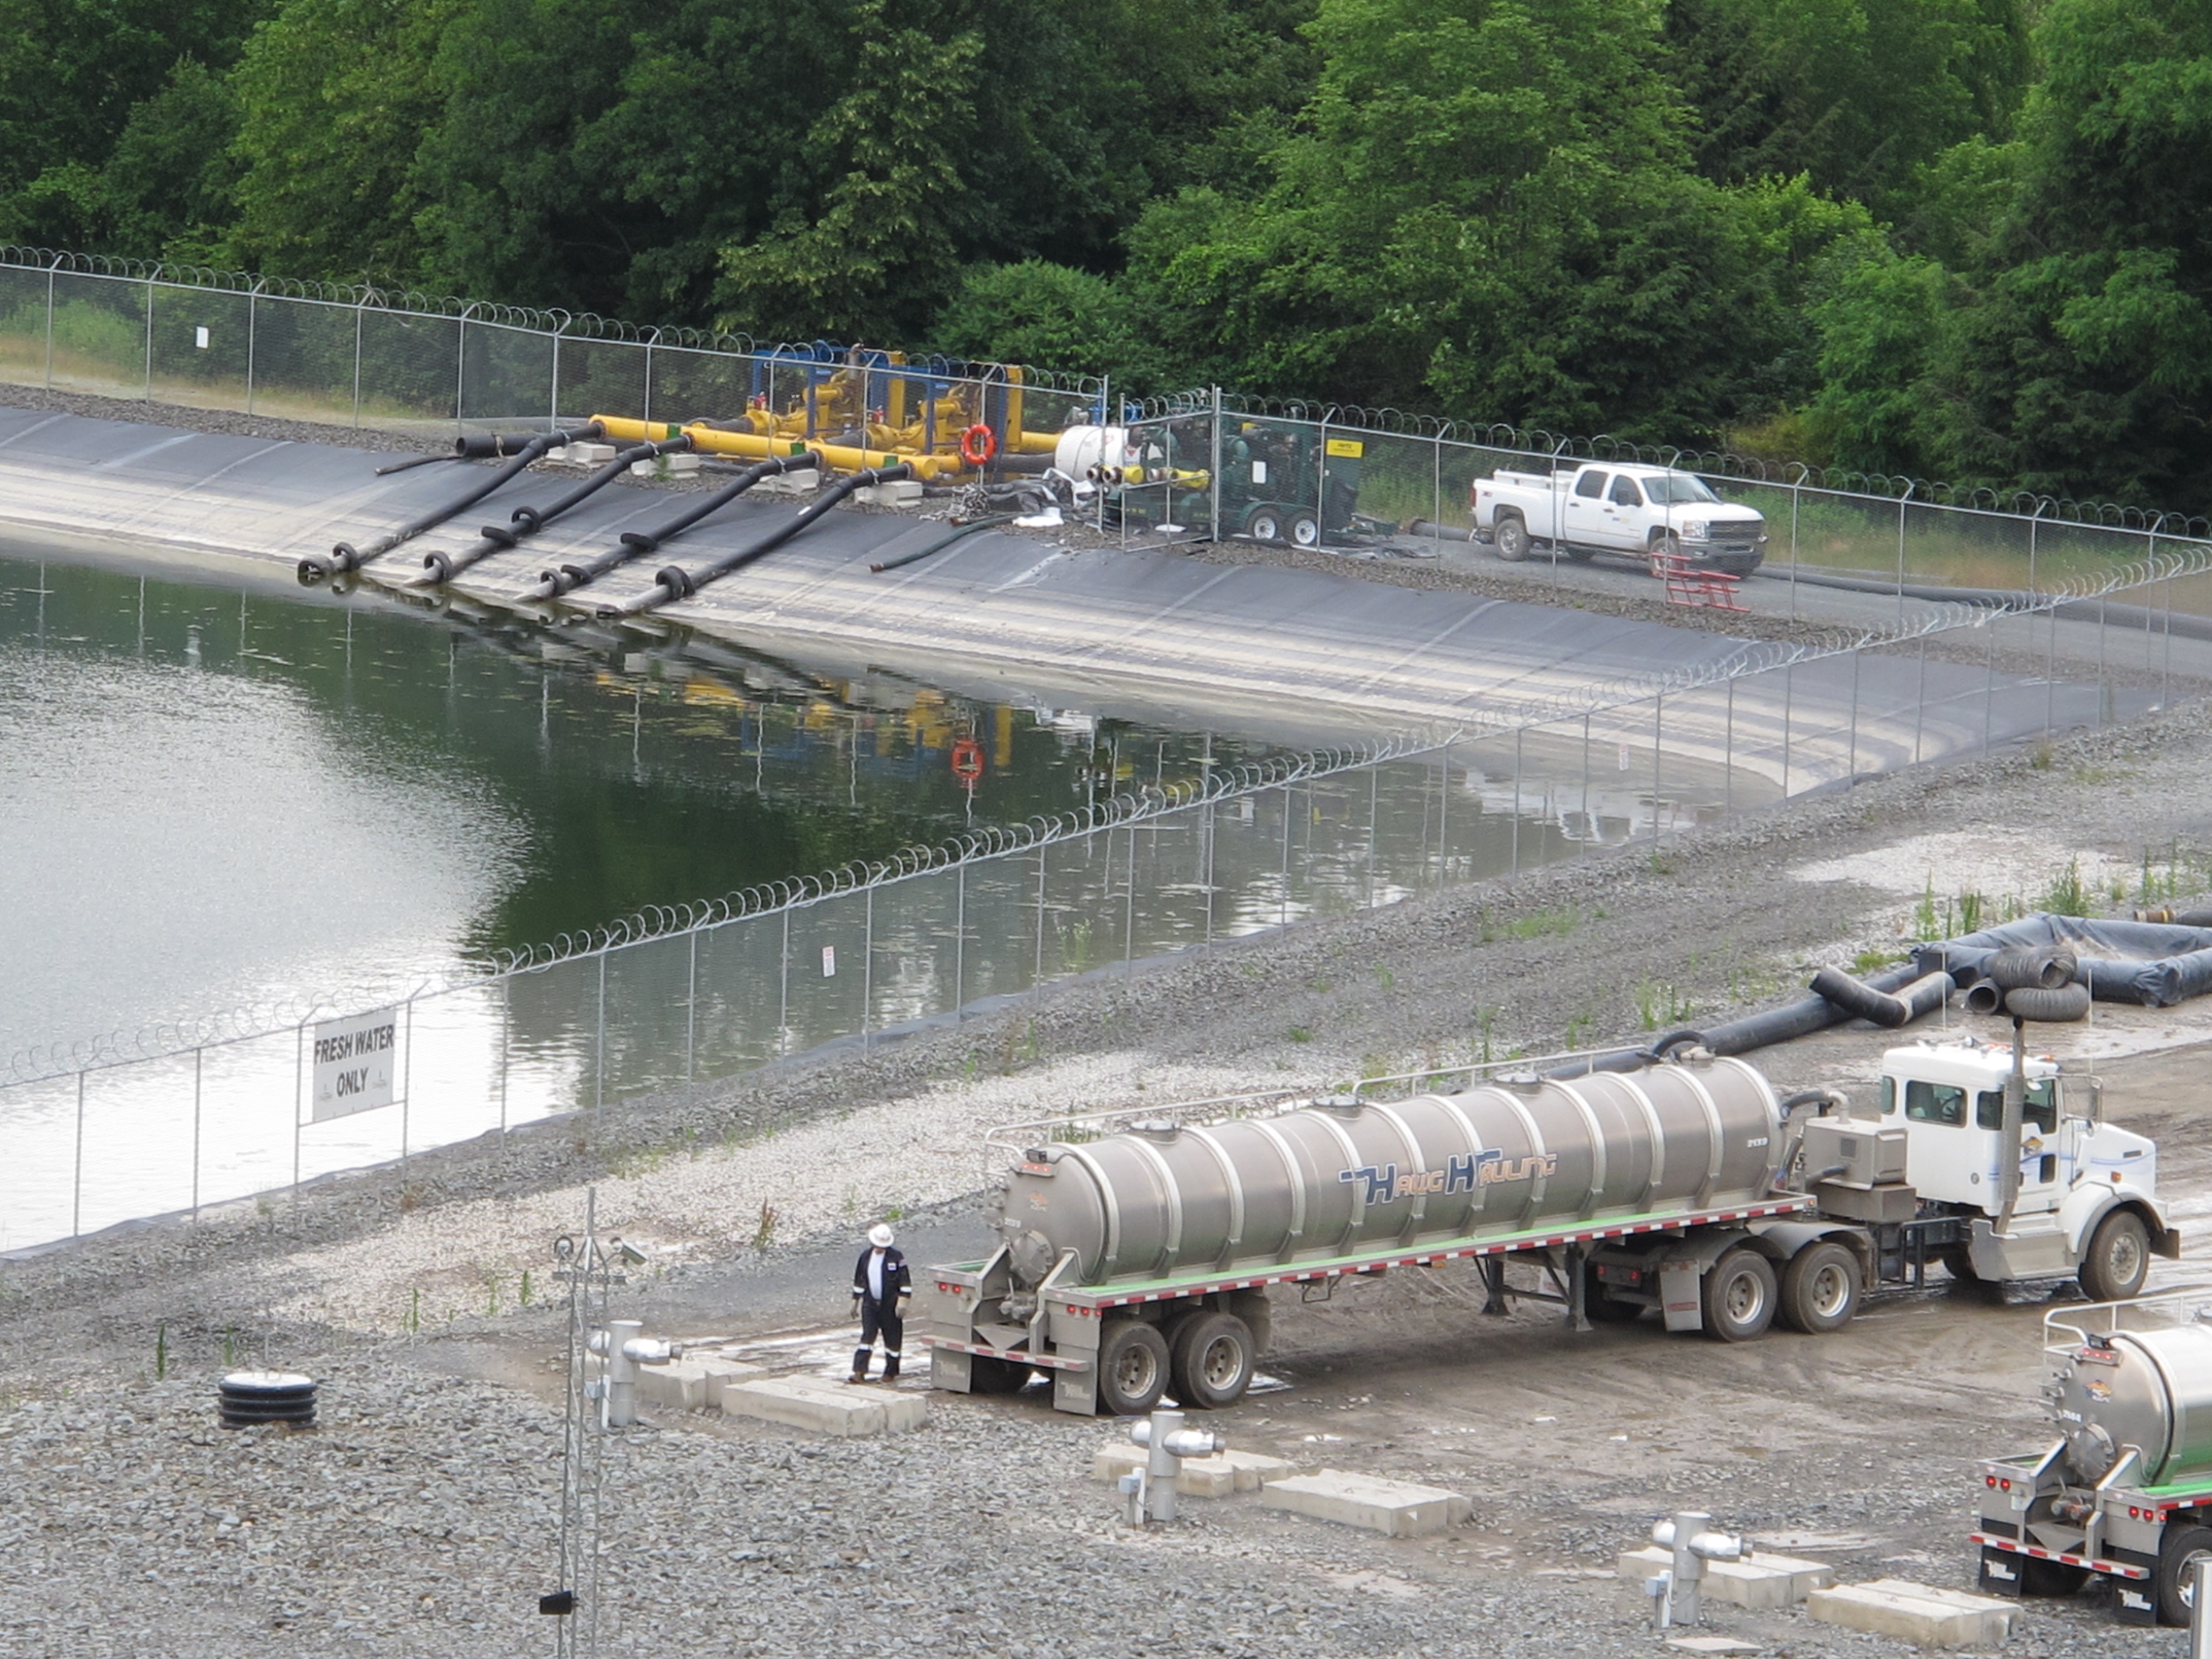 Fracking can harm drinking water: United States agency